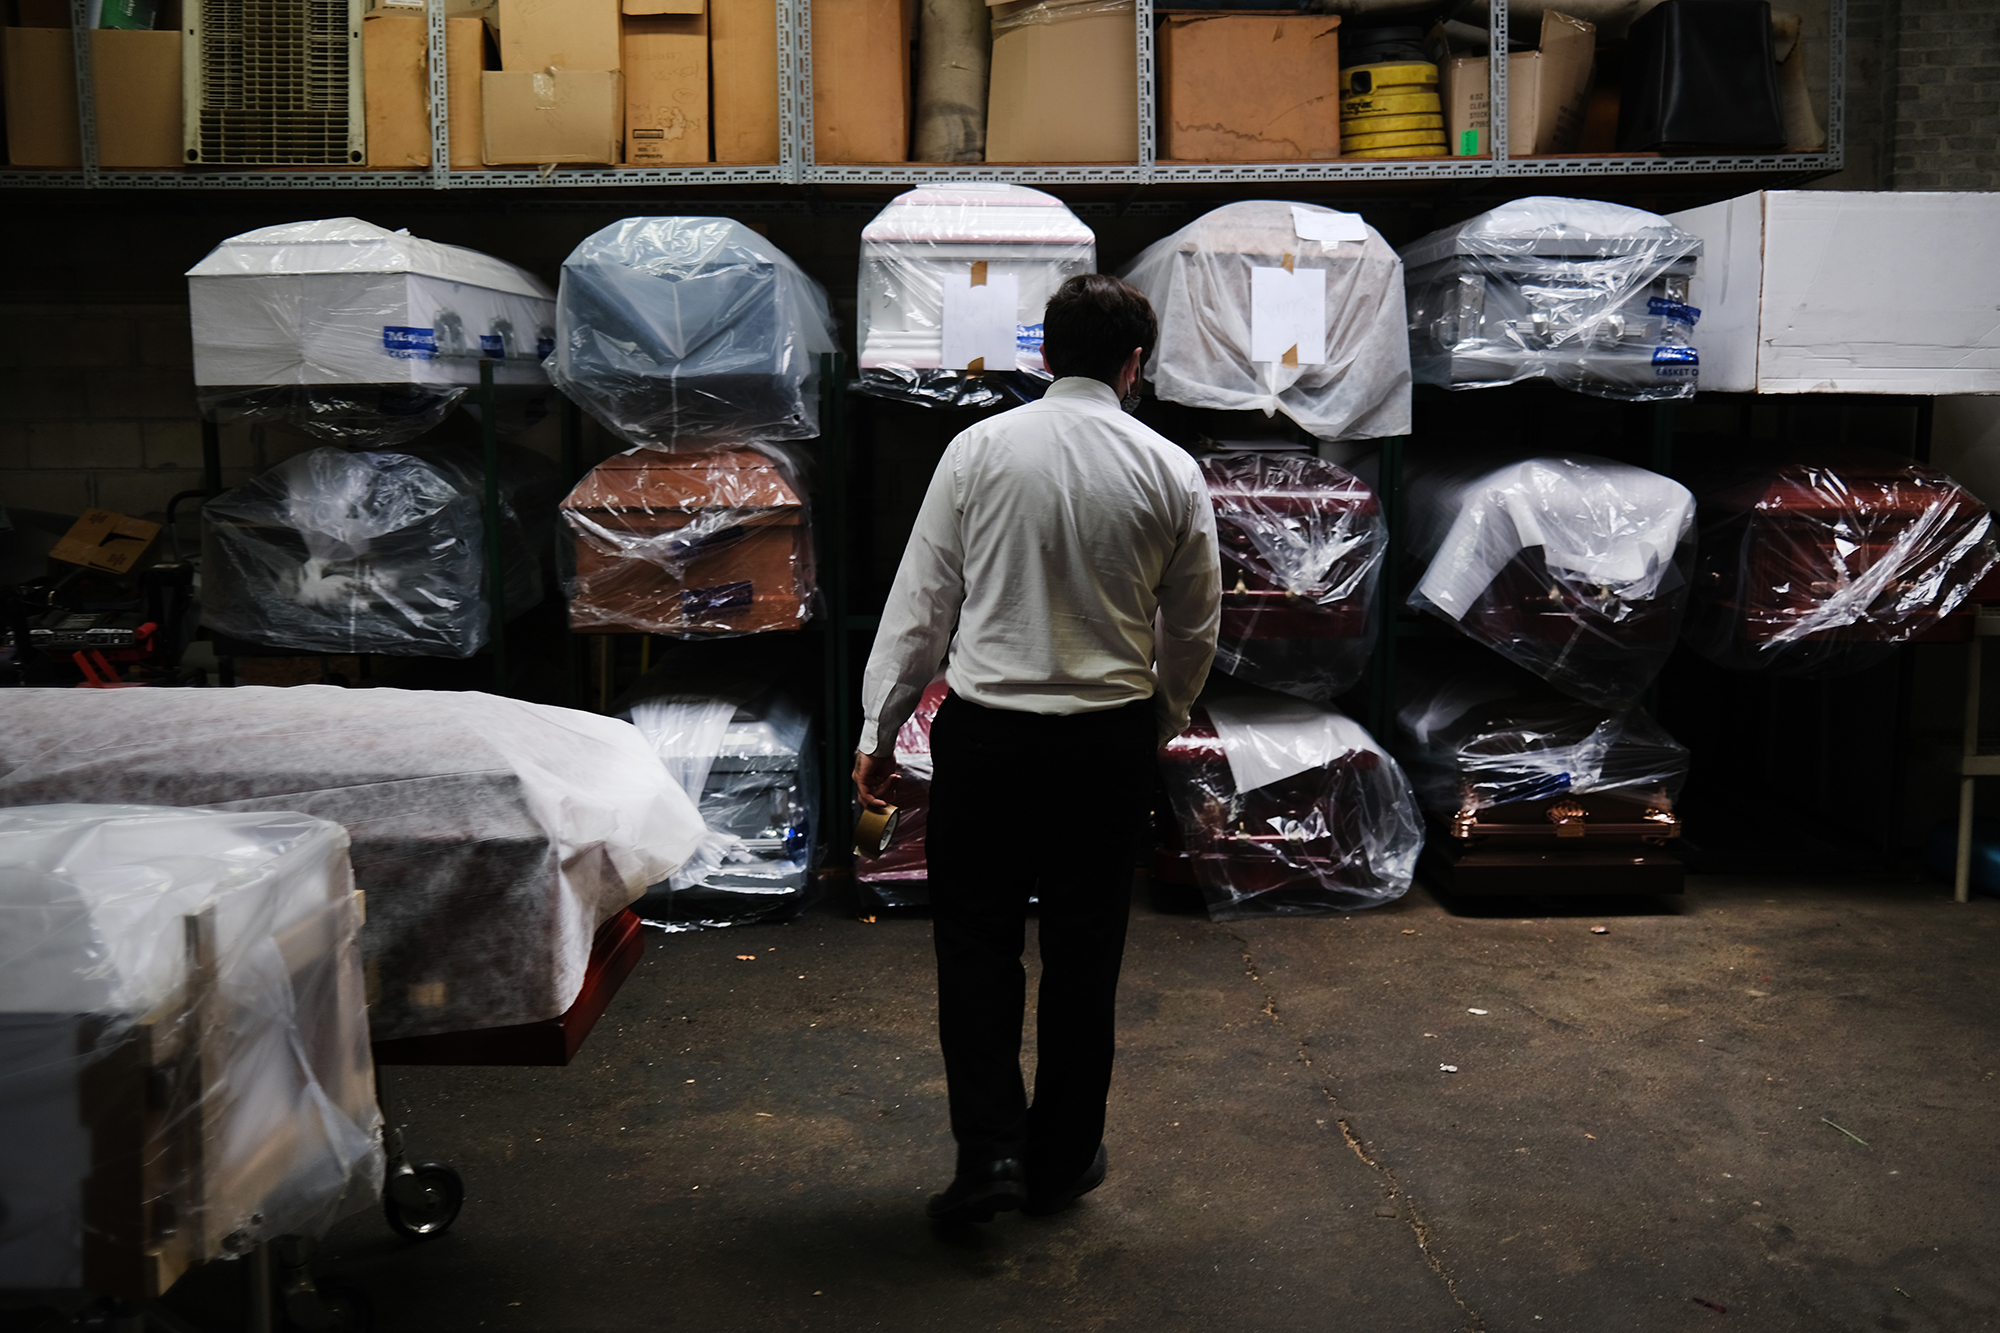 A funeral home worker tends to the inventory of pre-sold caskets at a funeral home on April 29, 2020 in New York City.